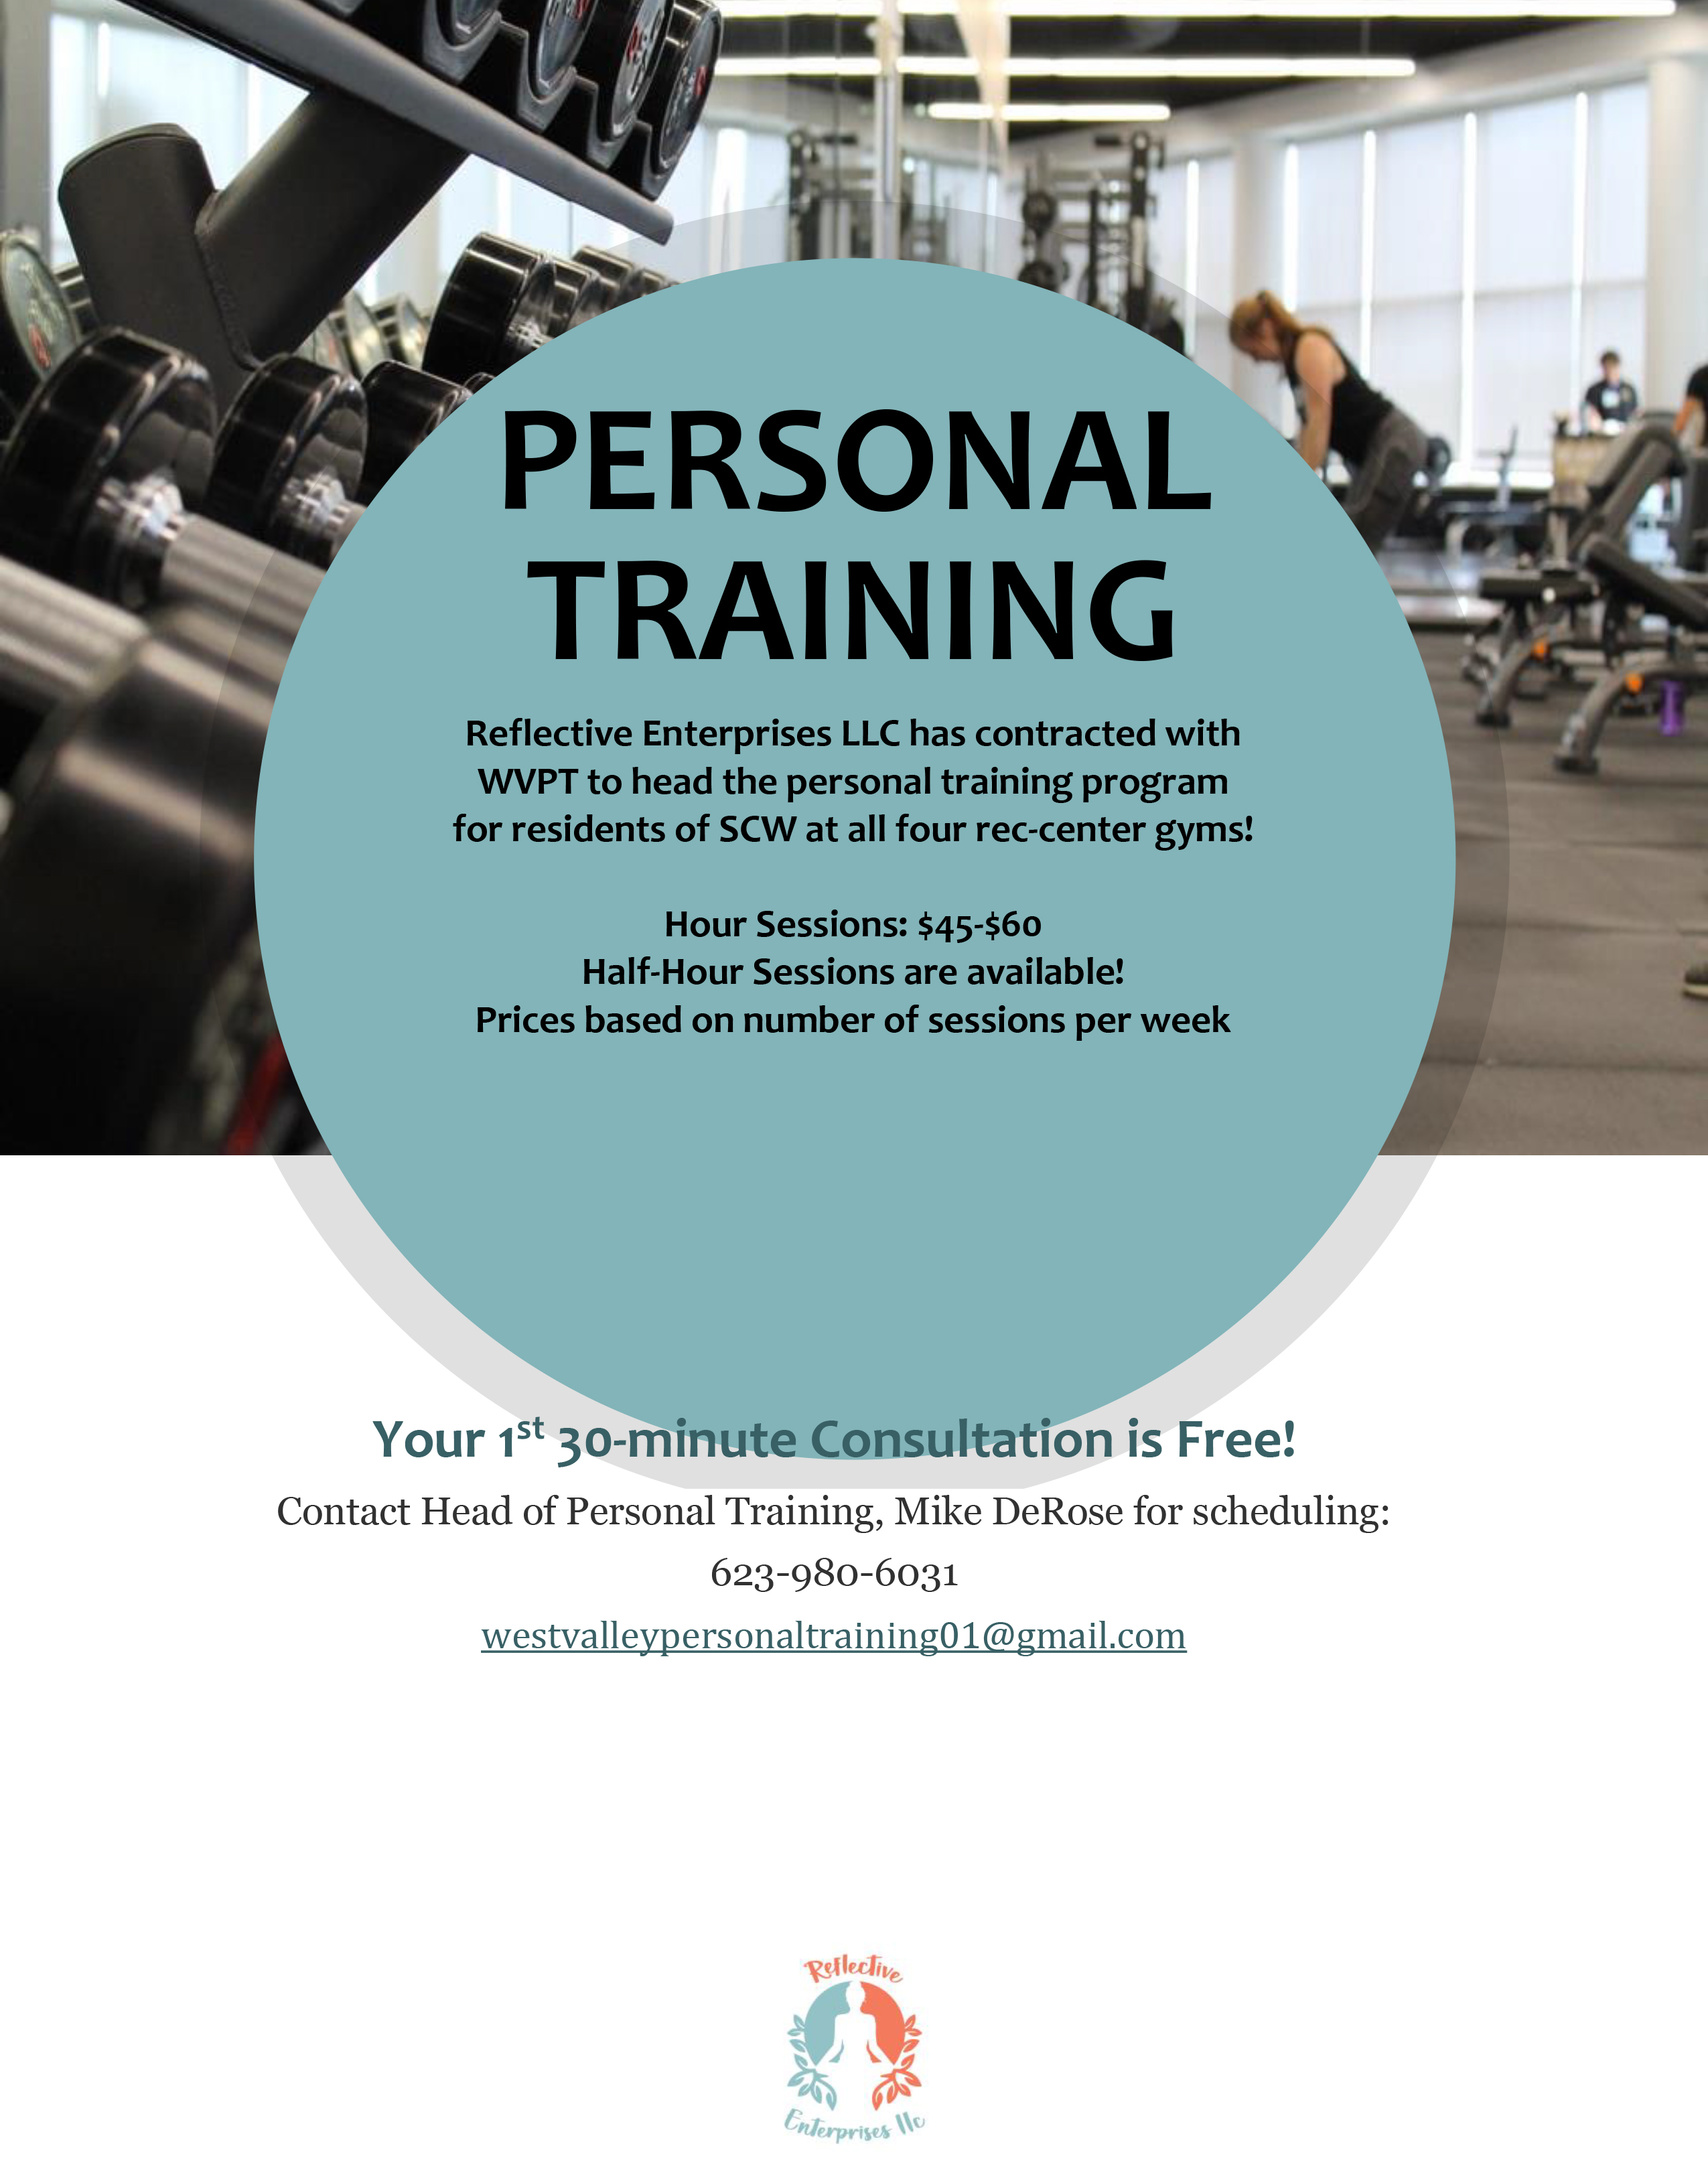 Personal Training Services at Sun City West Jan 2020